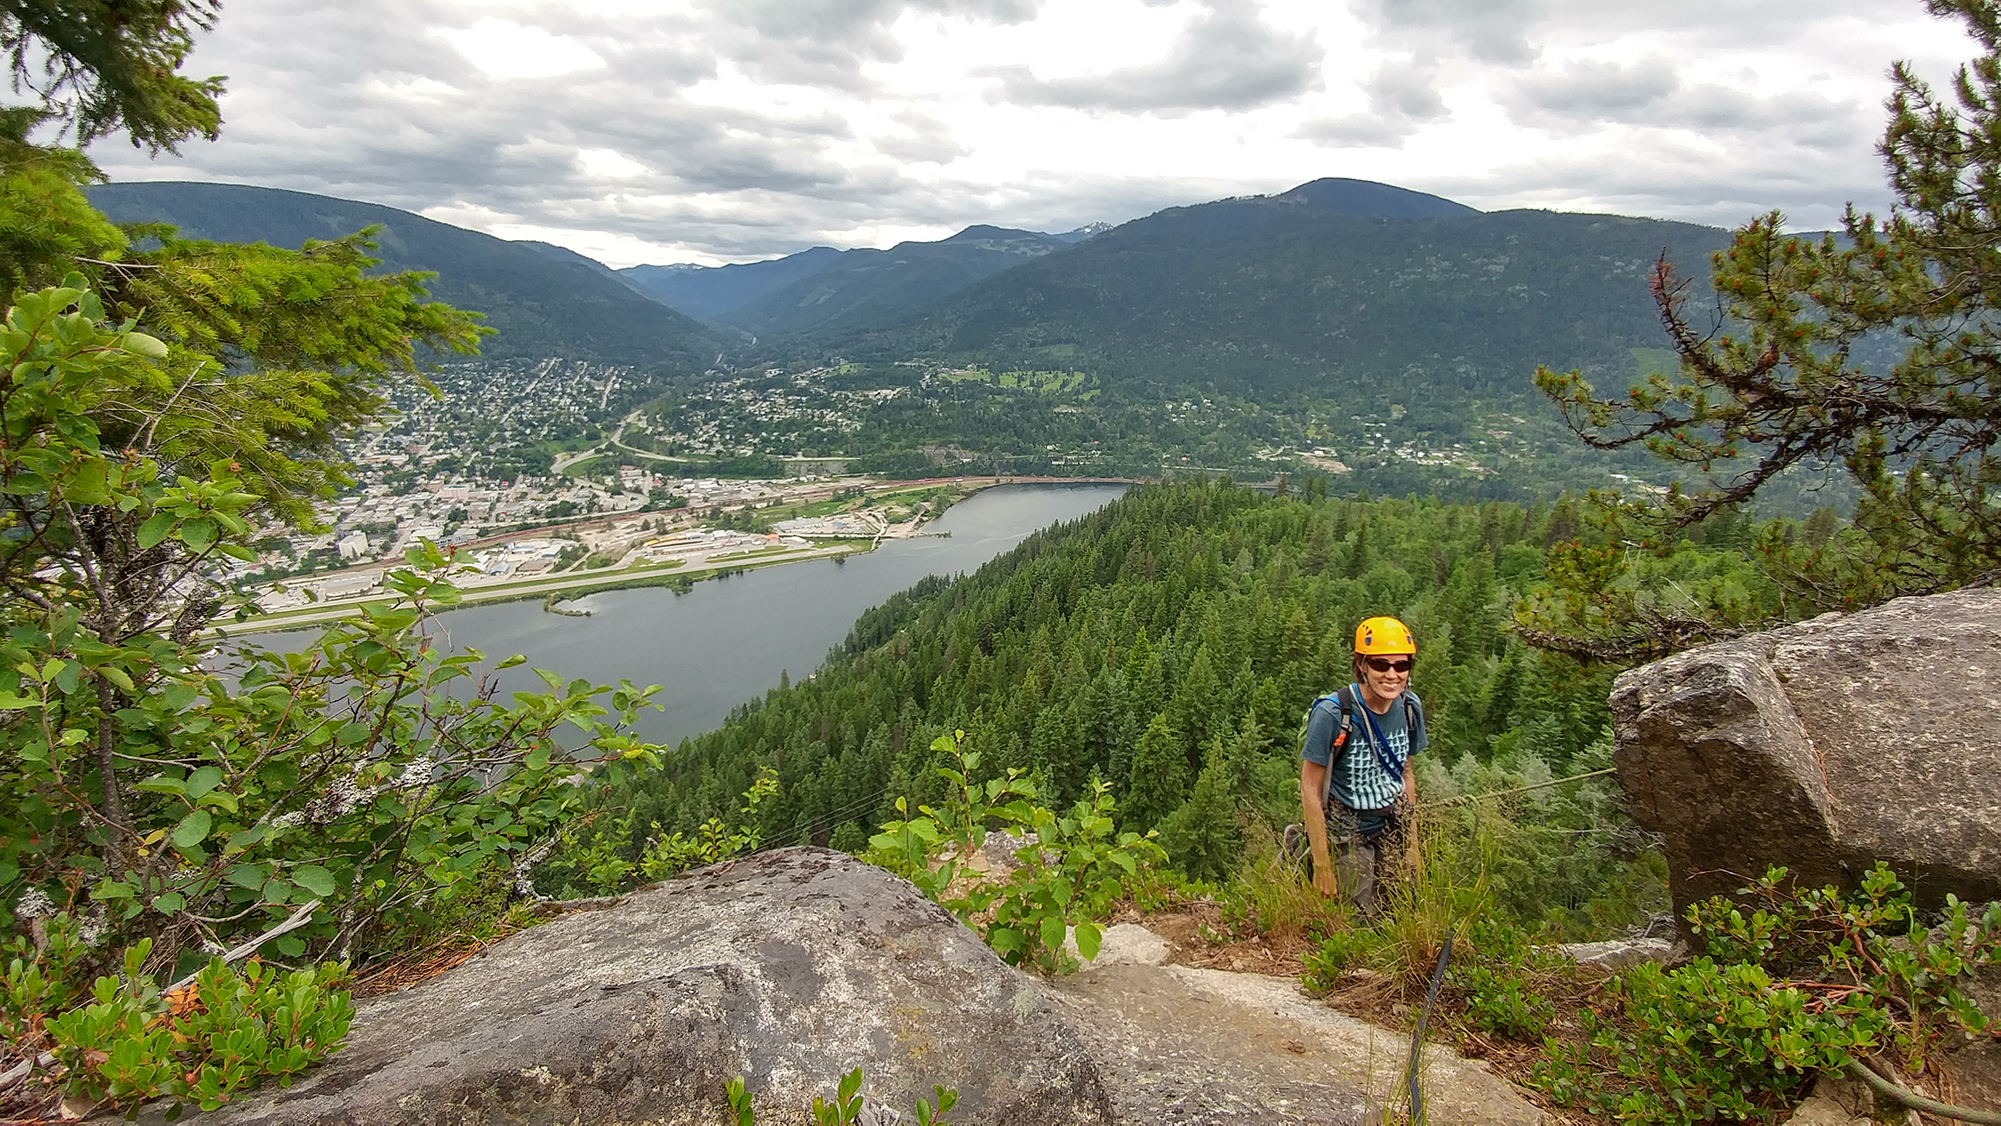 A climber standing on Pulpit Rock with a view of Nelson, BC below.